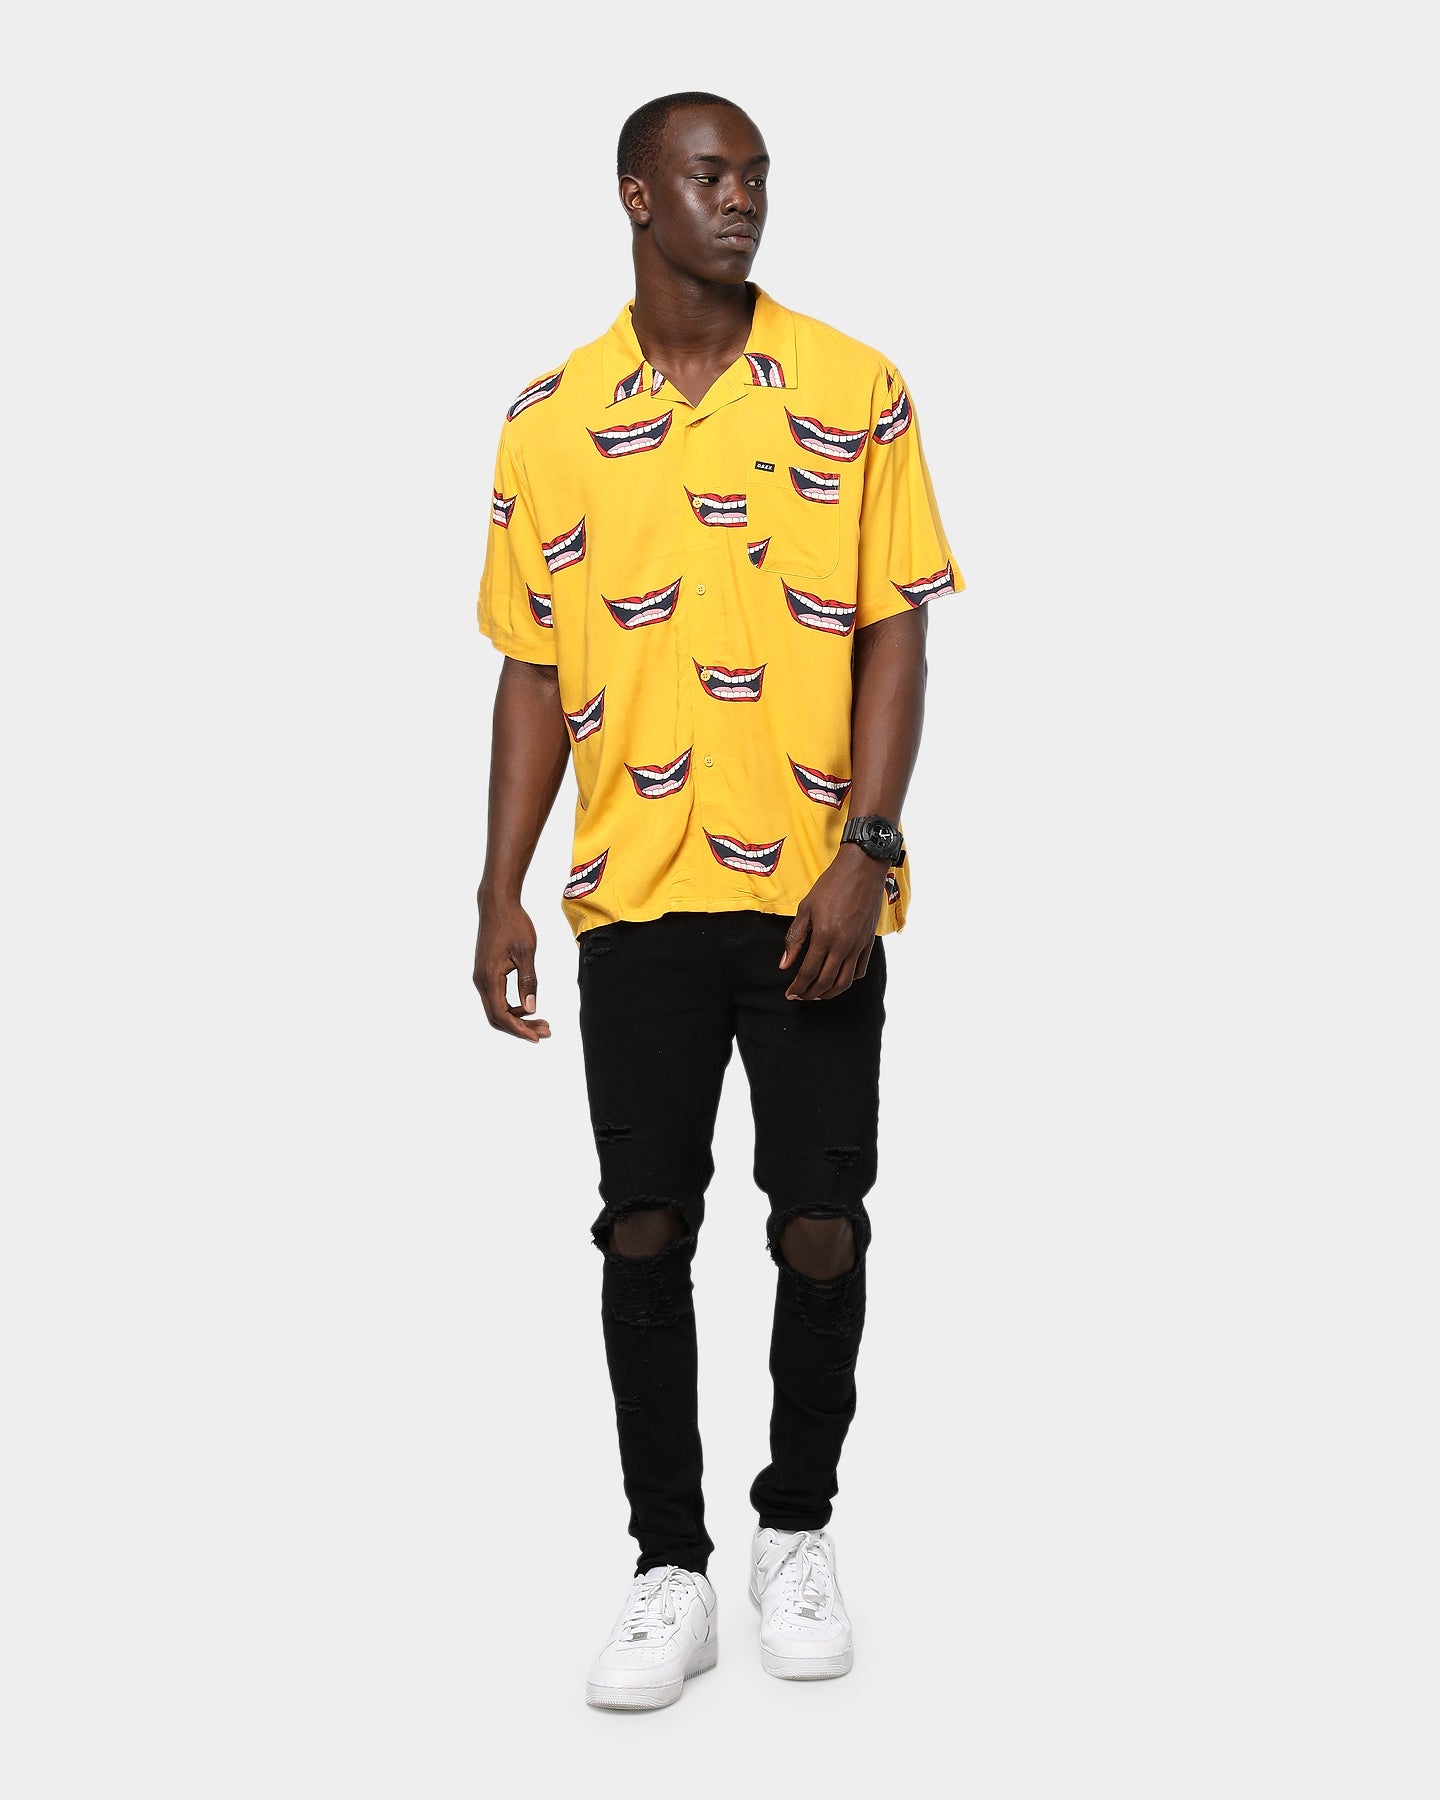 Obey Lips Woven Shirt YellowMulti Coloured